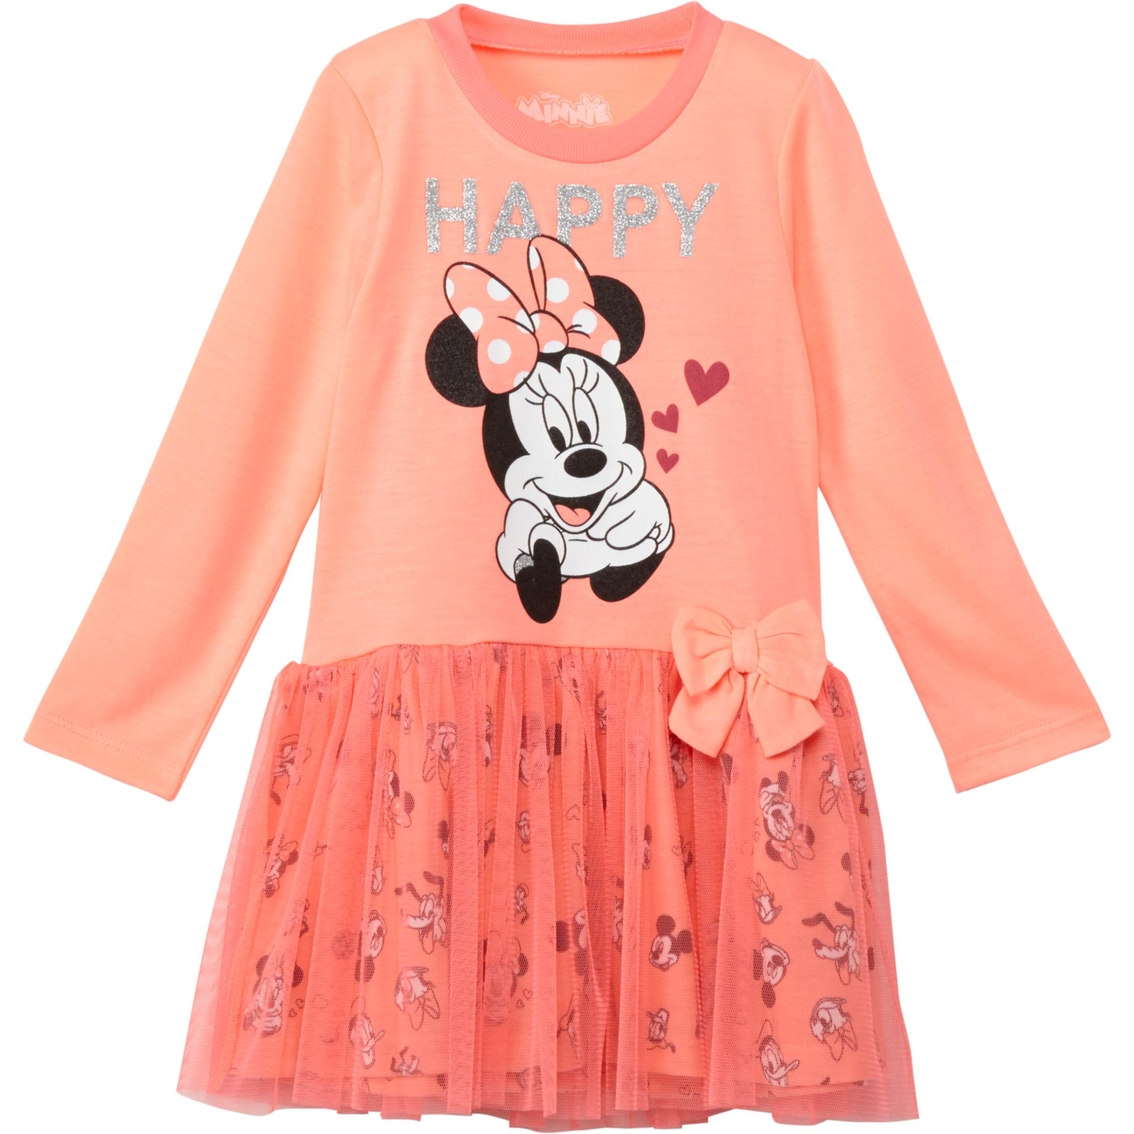 61ca7dfc Disney Toddler Girls Minnie Mouse Happy Tulle Dress | Toddler Girls ...